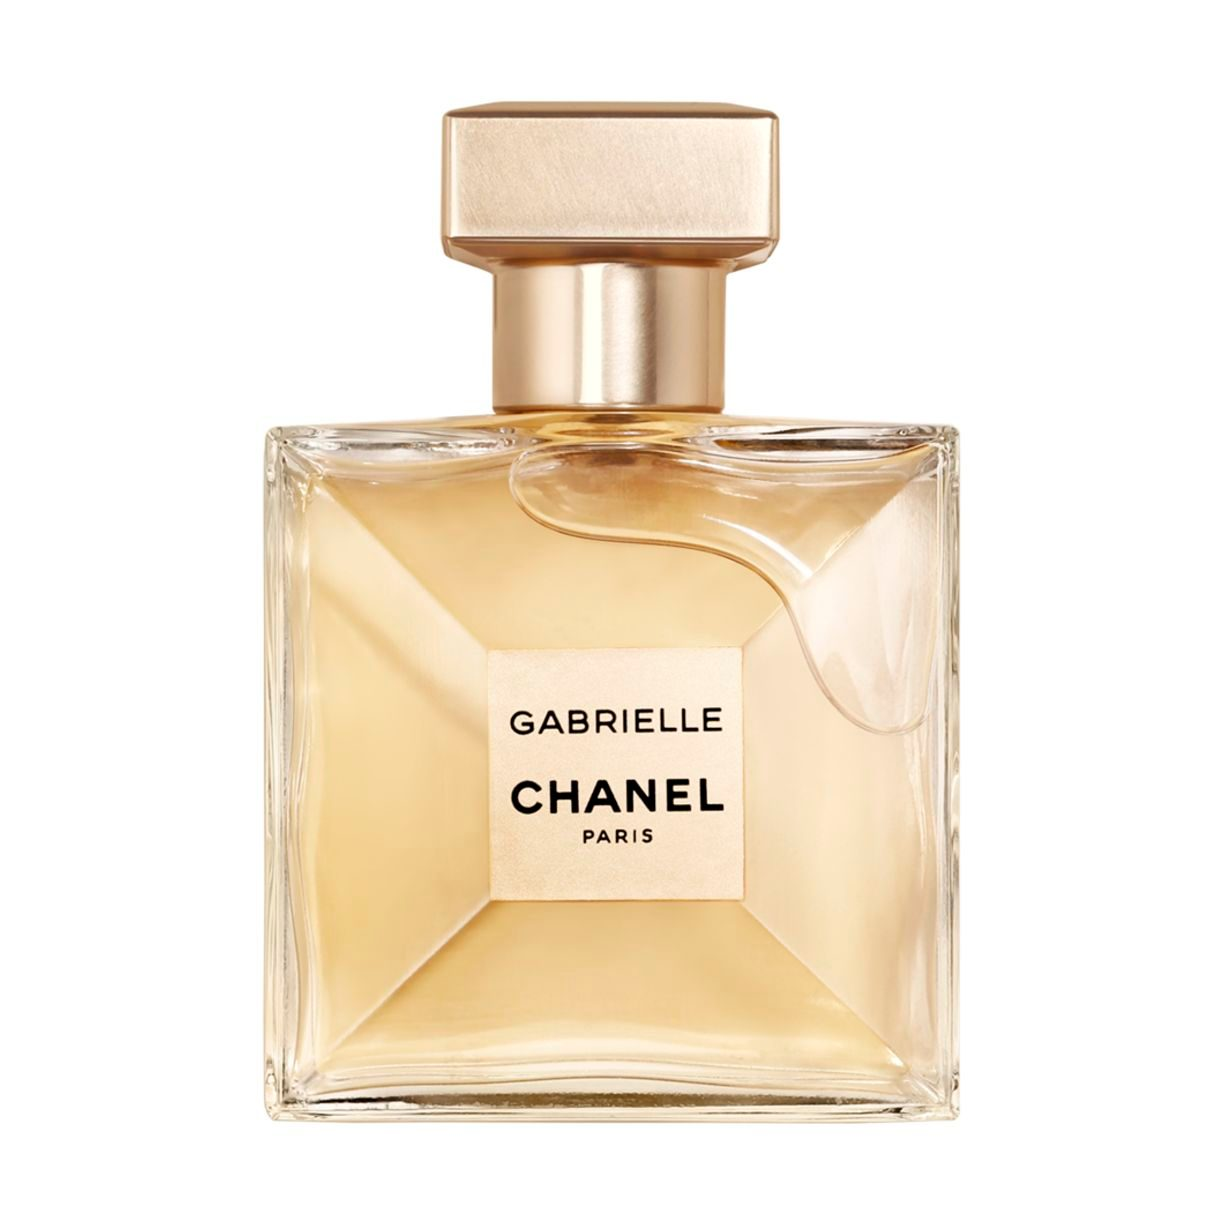 GABRIELLE CHANEL EAU DE PARFUM SPRAY 35ML